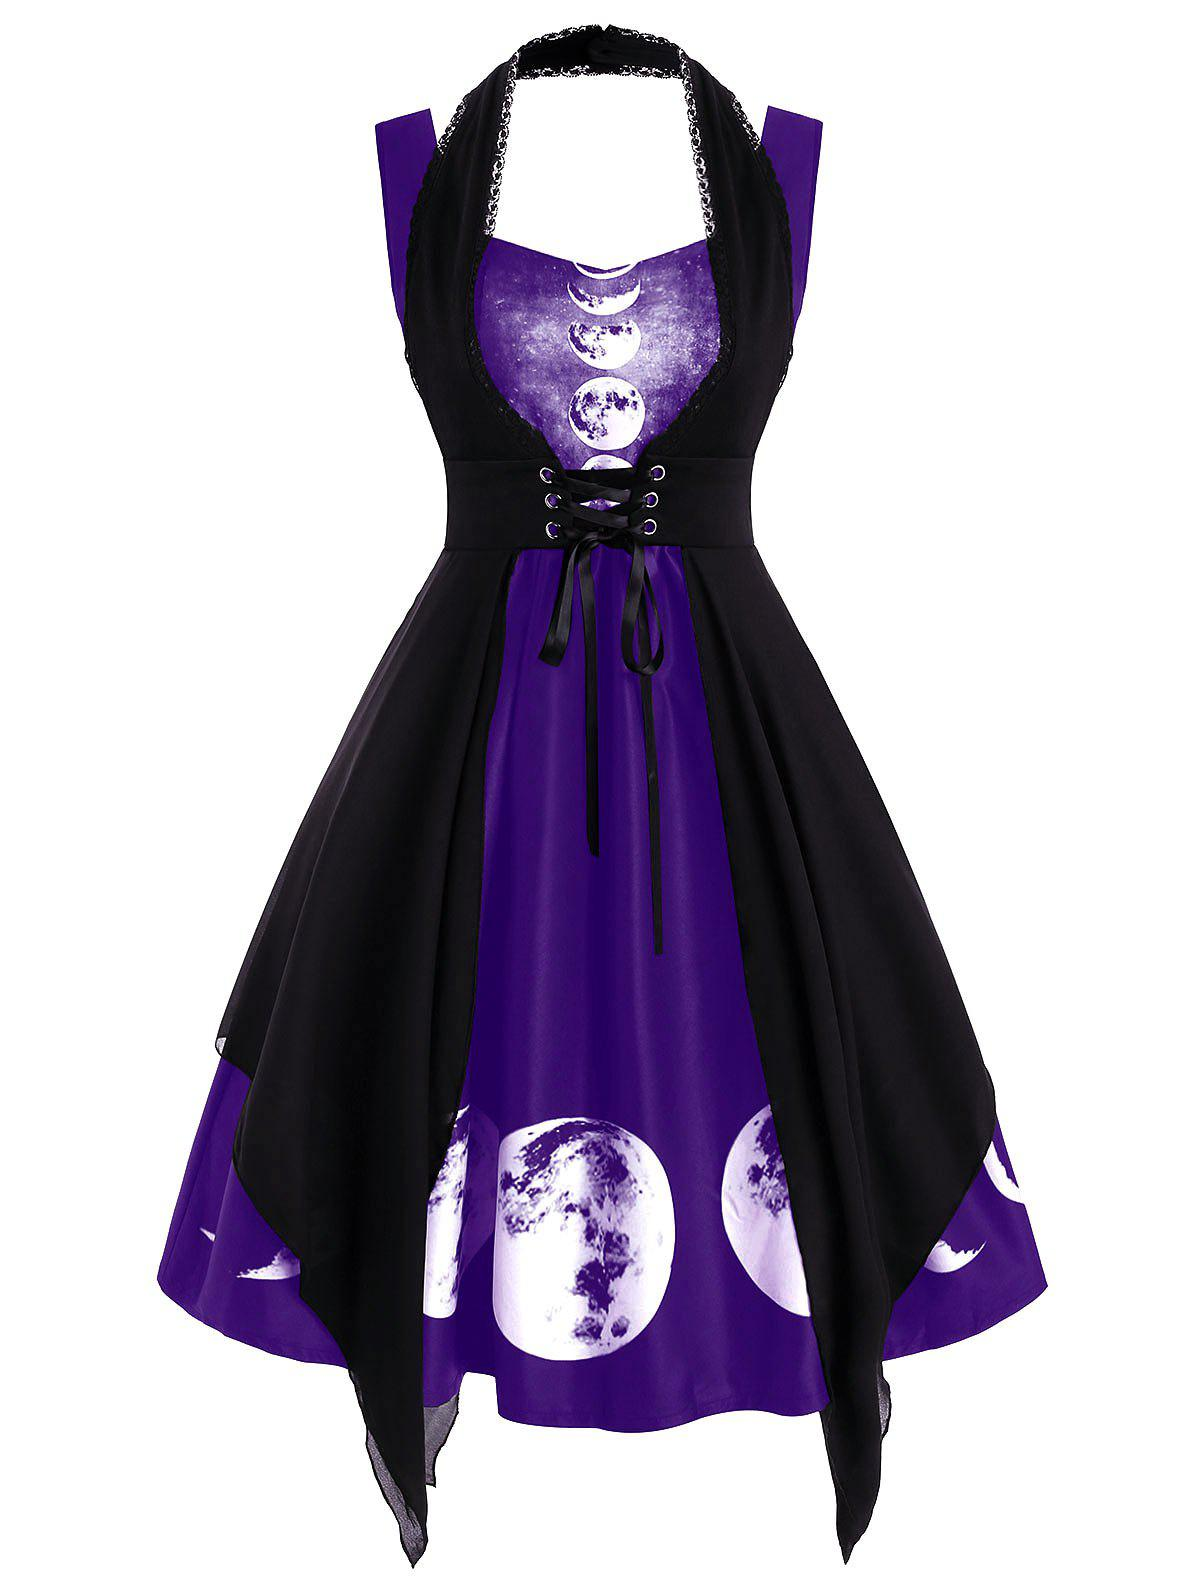 Sweetheart Lunar Eclipse Print Dress with Lace Insert Corset - DULL PURPLE S